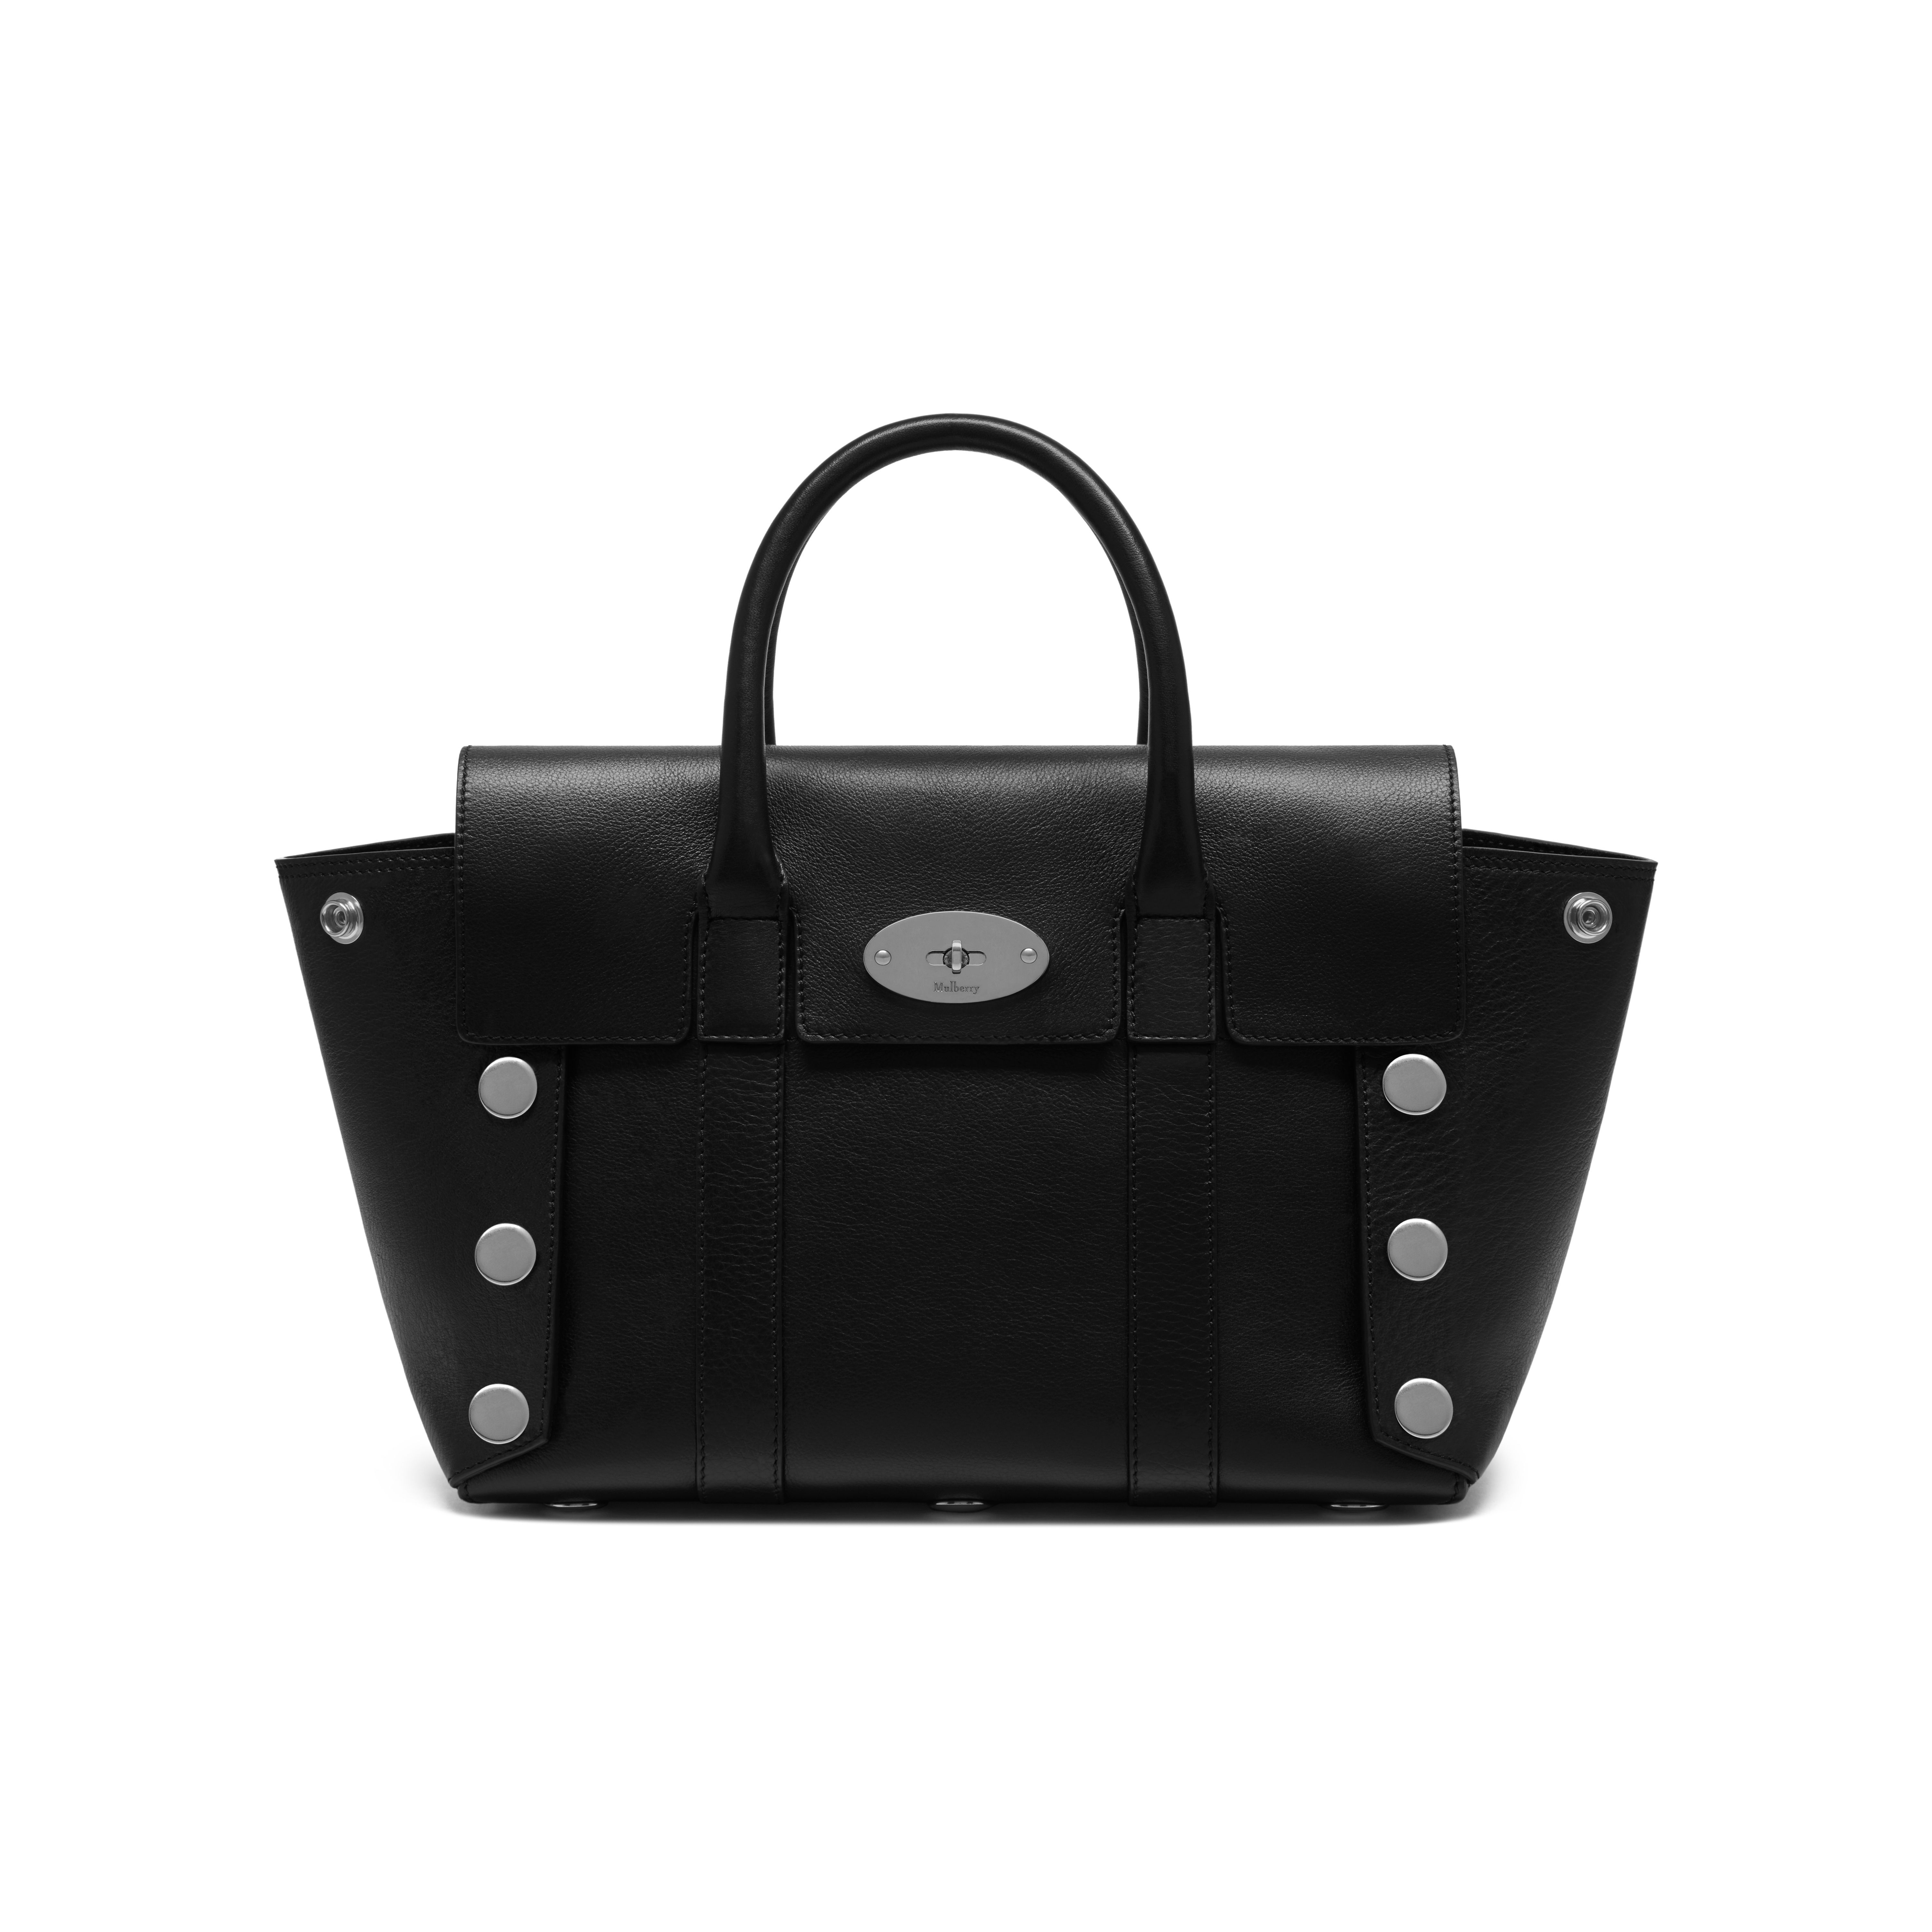 c179ceef32 Mulberry - Small New Bayswater in Black Smooth Calf with Studs ...